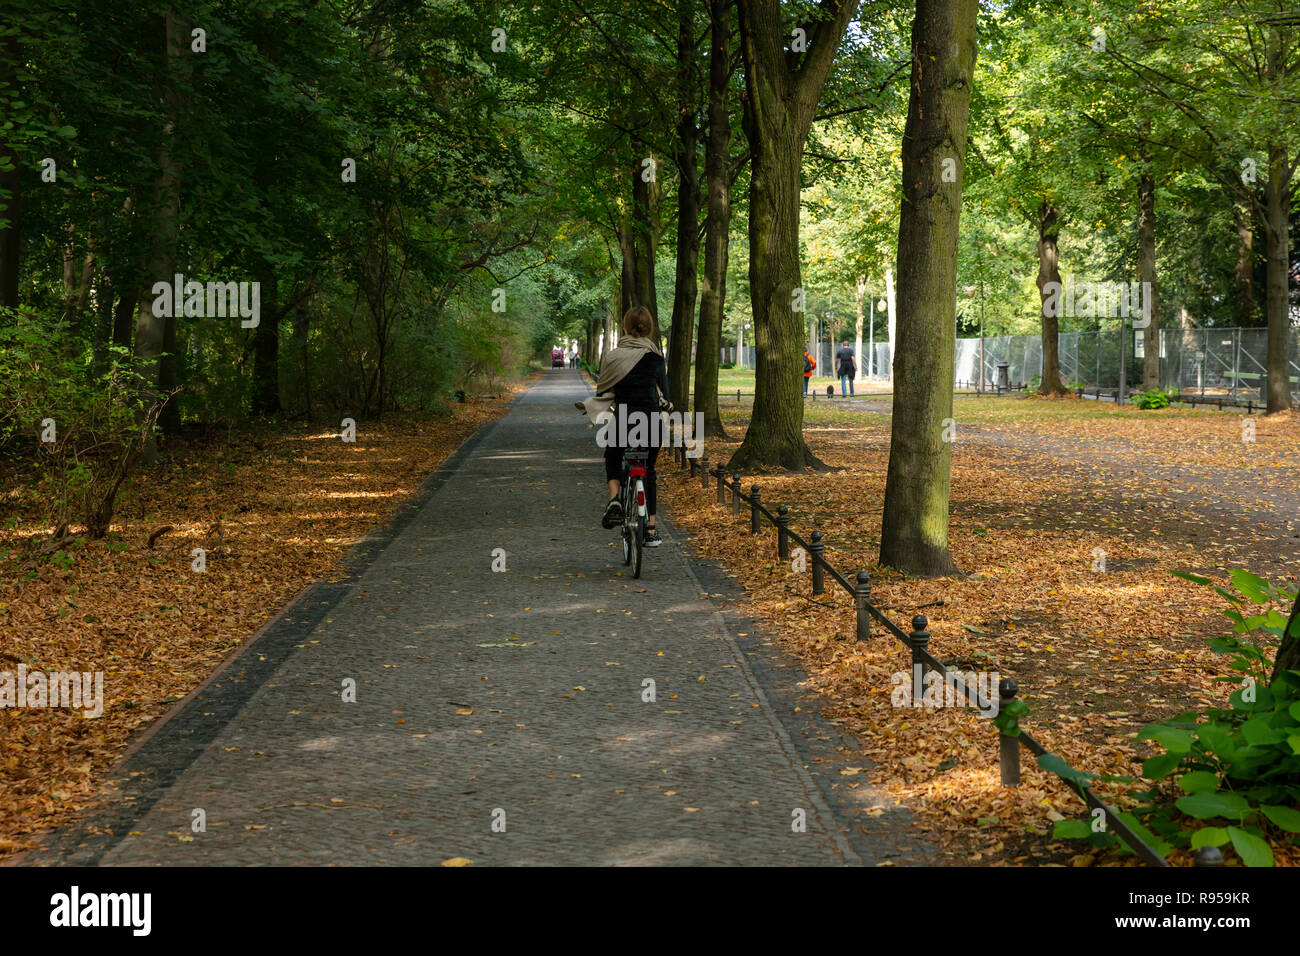 Healthy lifestyle concept at Berlin Tiergarten park. Woman is cycling on a path. Forest at autumn background. Stock Photo